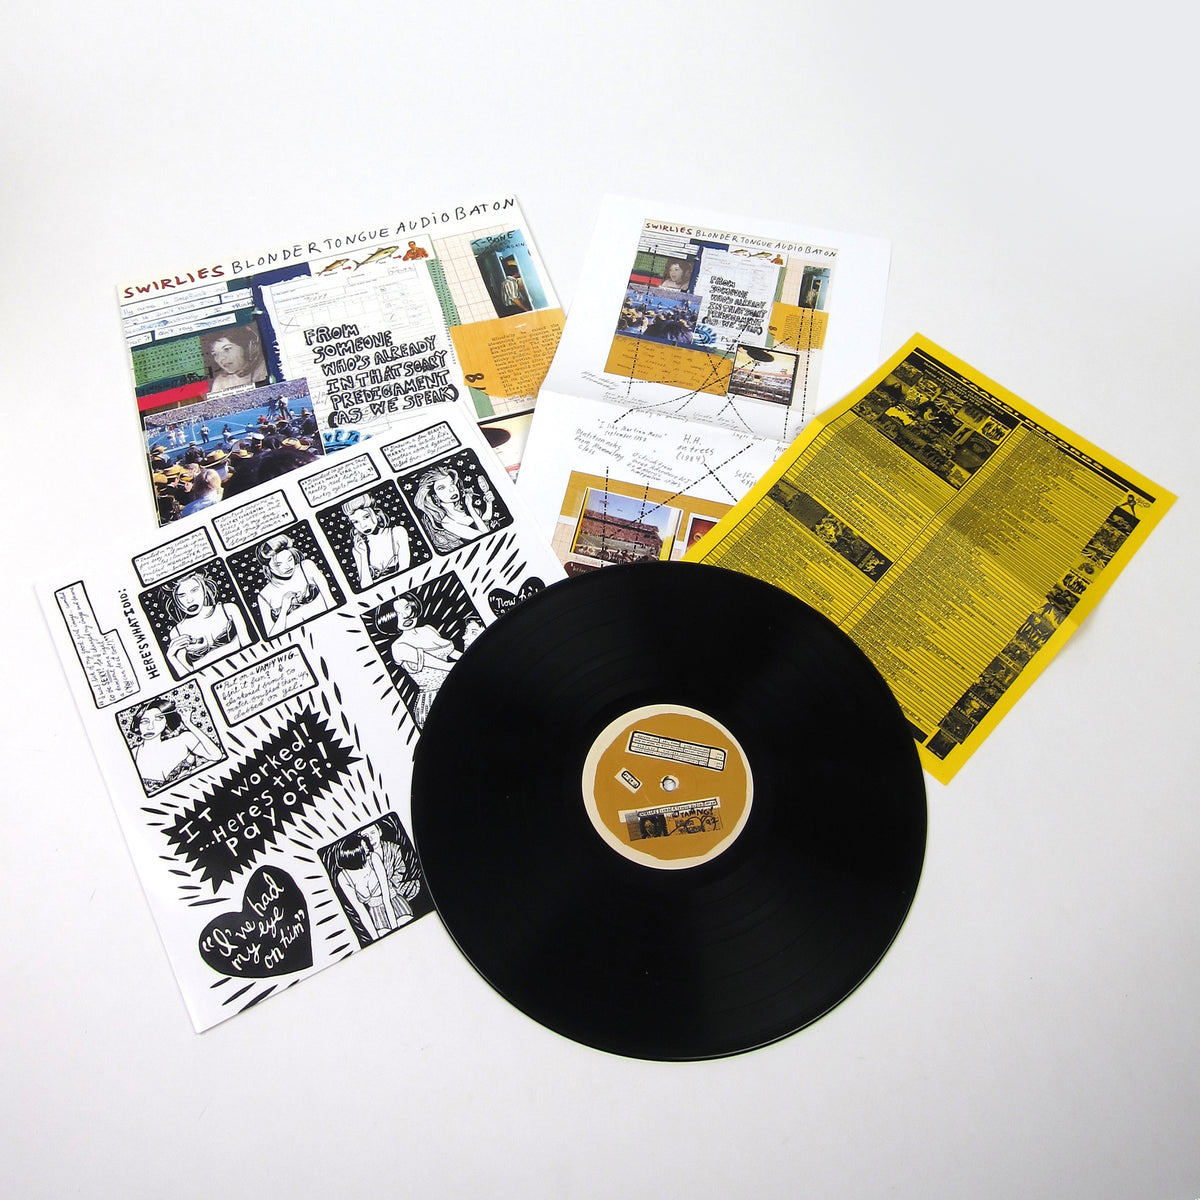 Swirlies: Blonder Tongue Audio Baton Vinyl LP